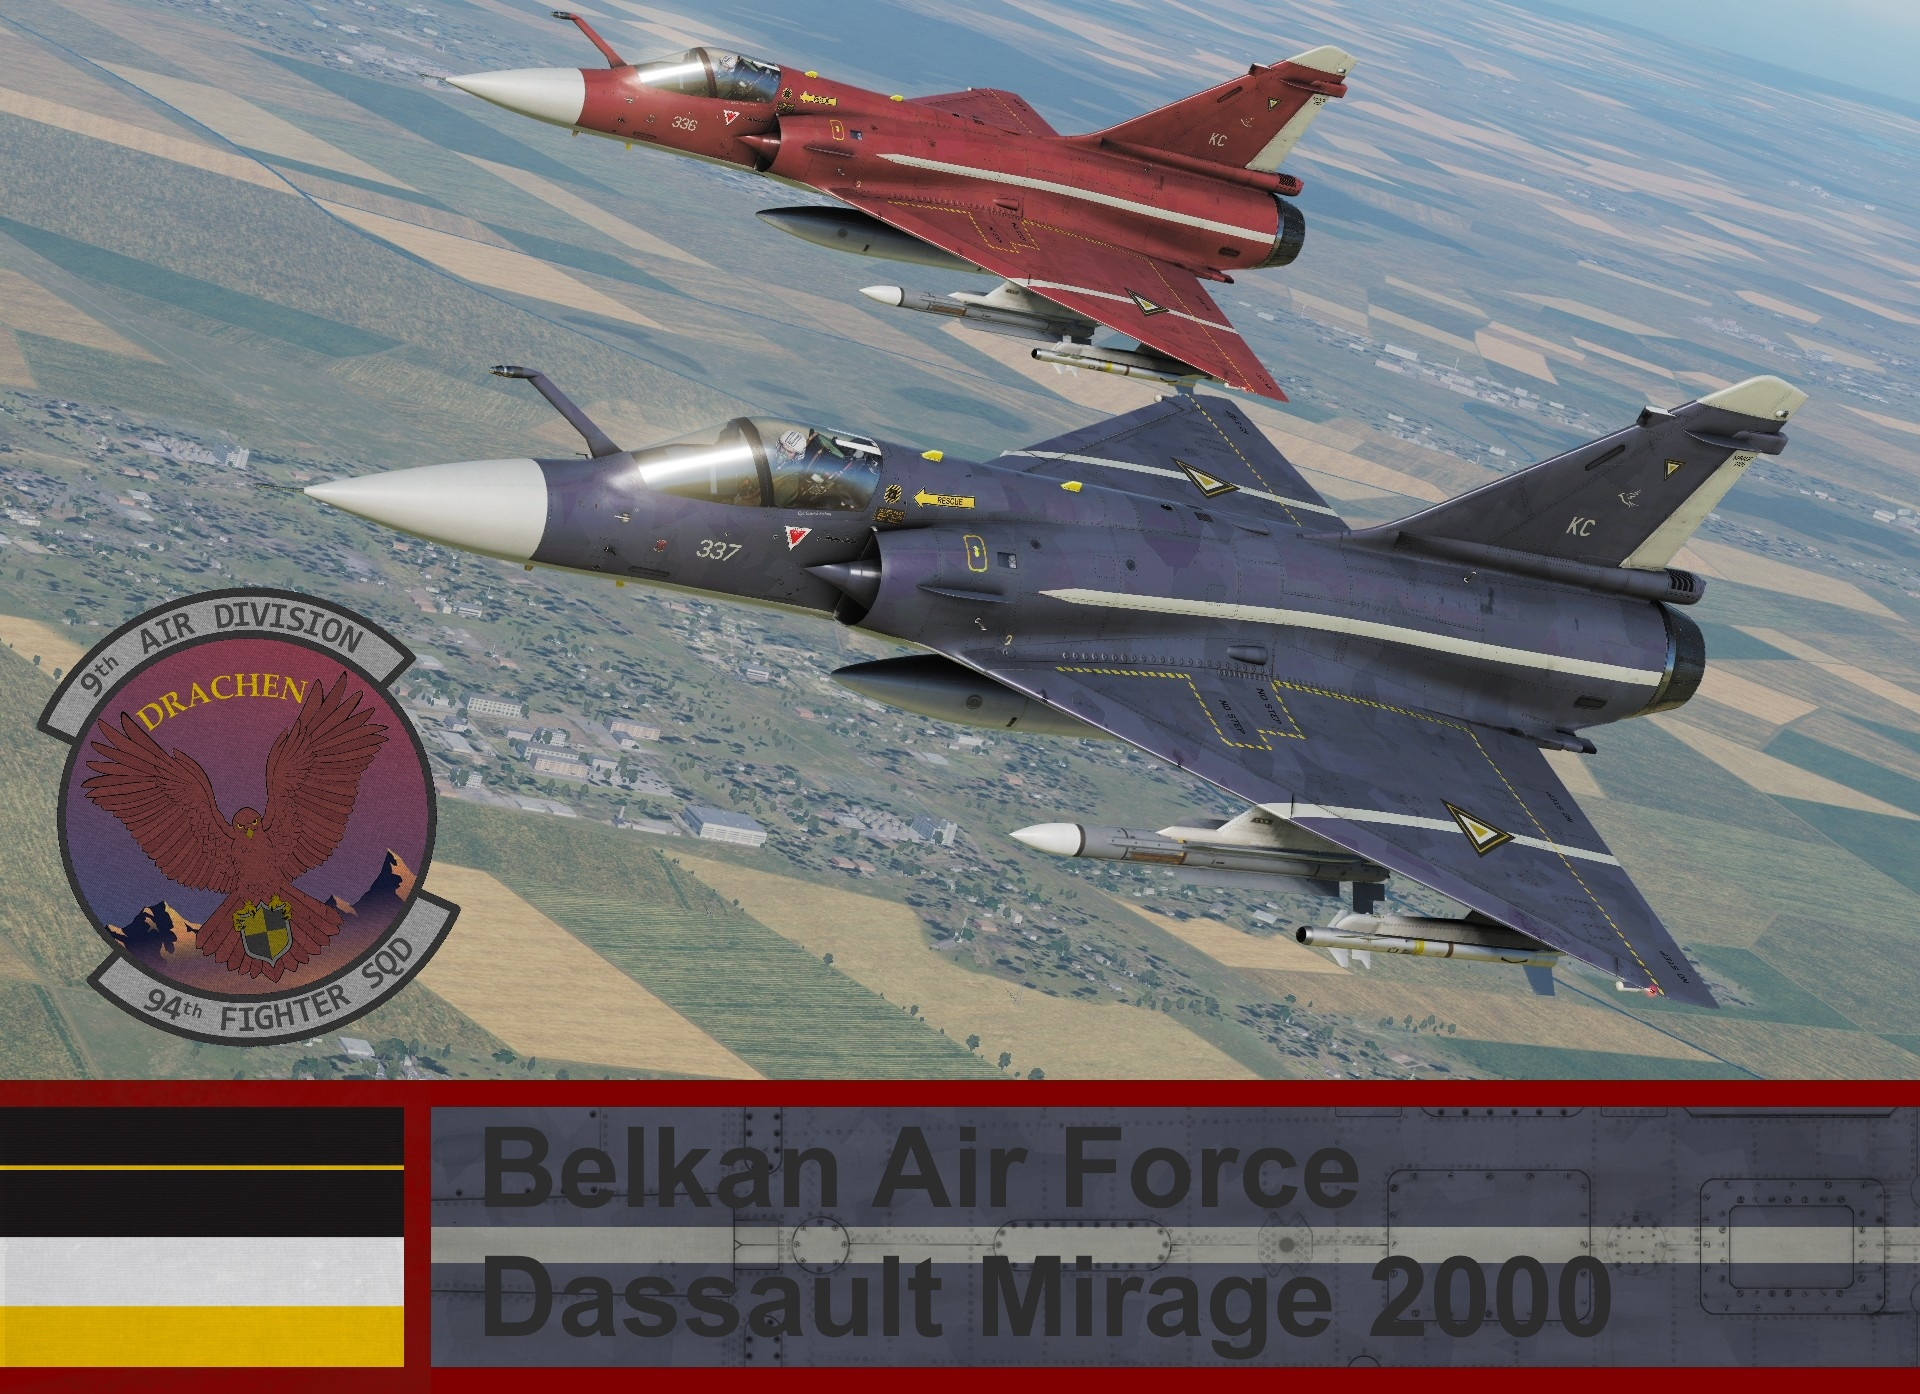 Belkan Air Force Mirage 2000C - Ace Combat Zero (94th FS) Cpt. Dietrich Brahms